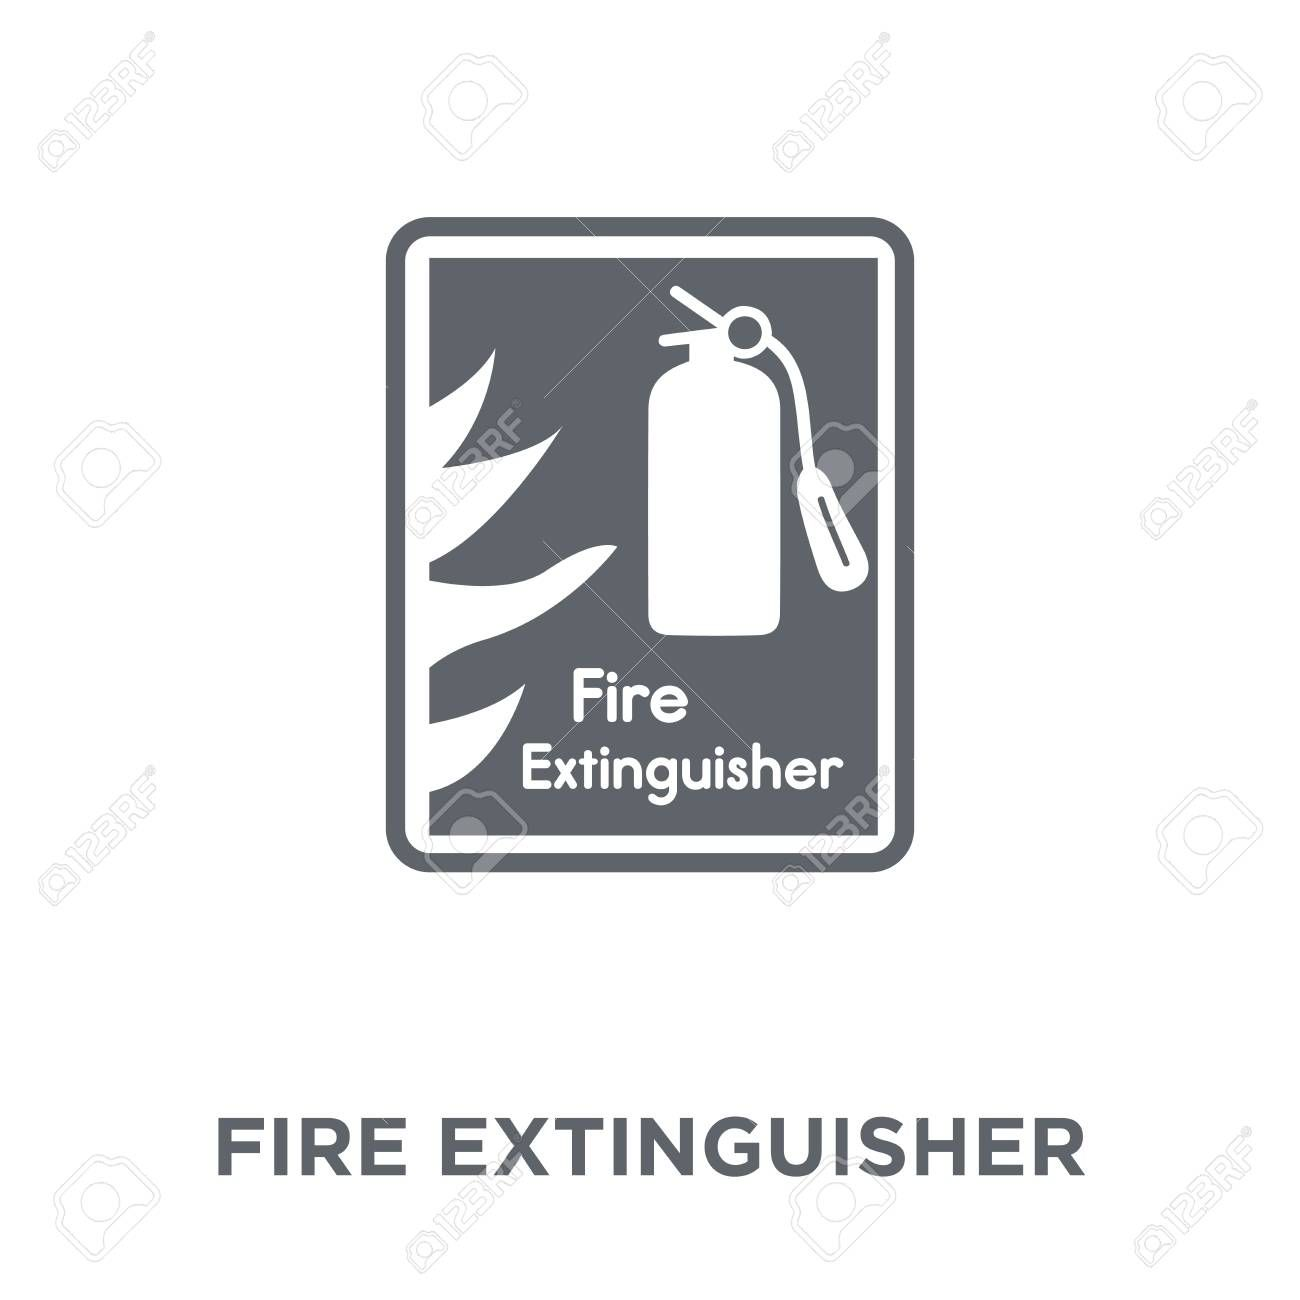 Fire Extinguisher Icon Fire Extinguisher Design Concept From Hotel Collection Simple Element Vector Illustr In 2020 Fire Extinguisher Hotel Collection Concept Design